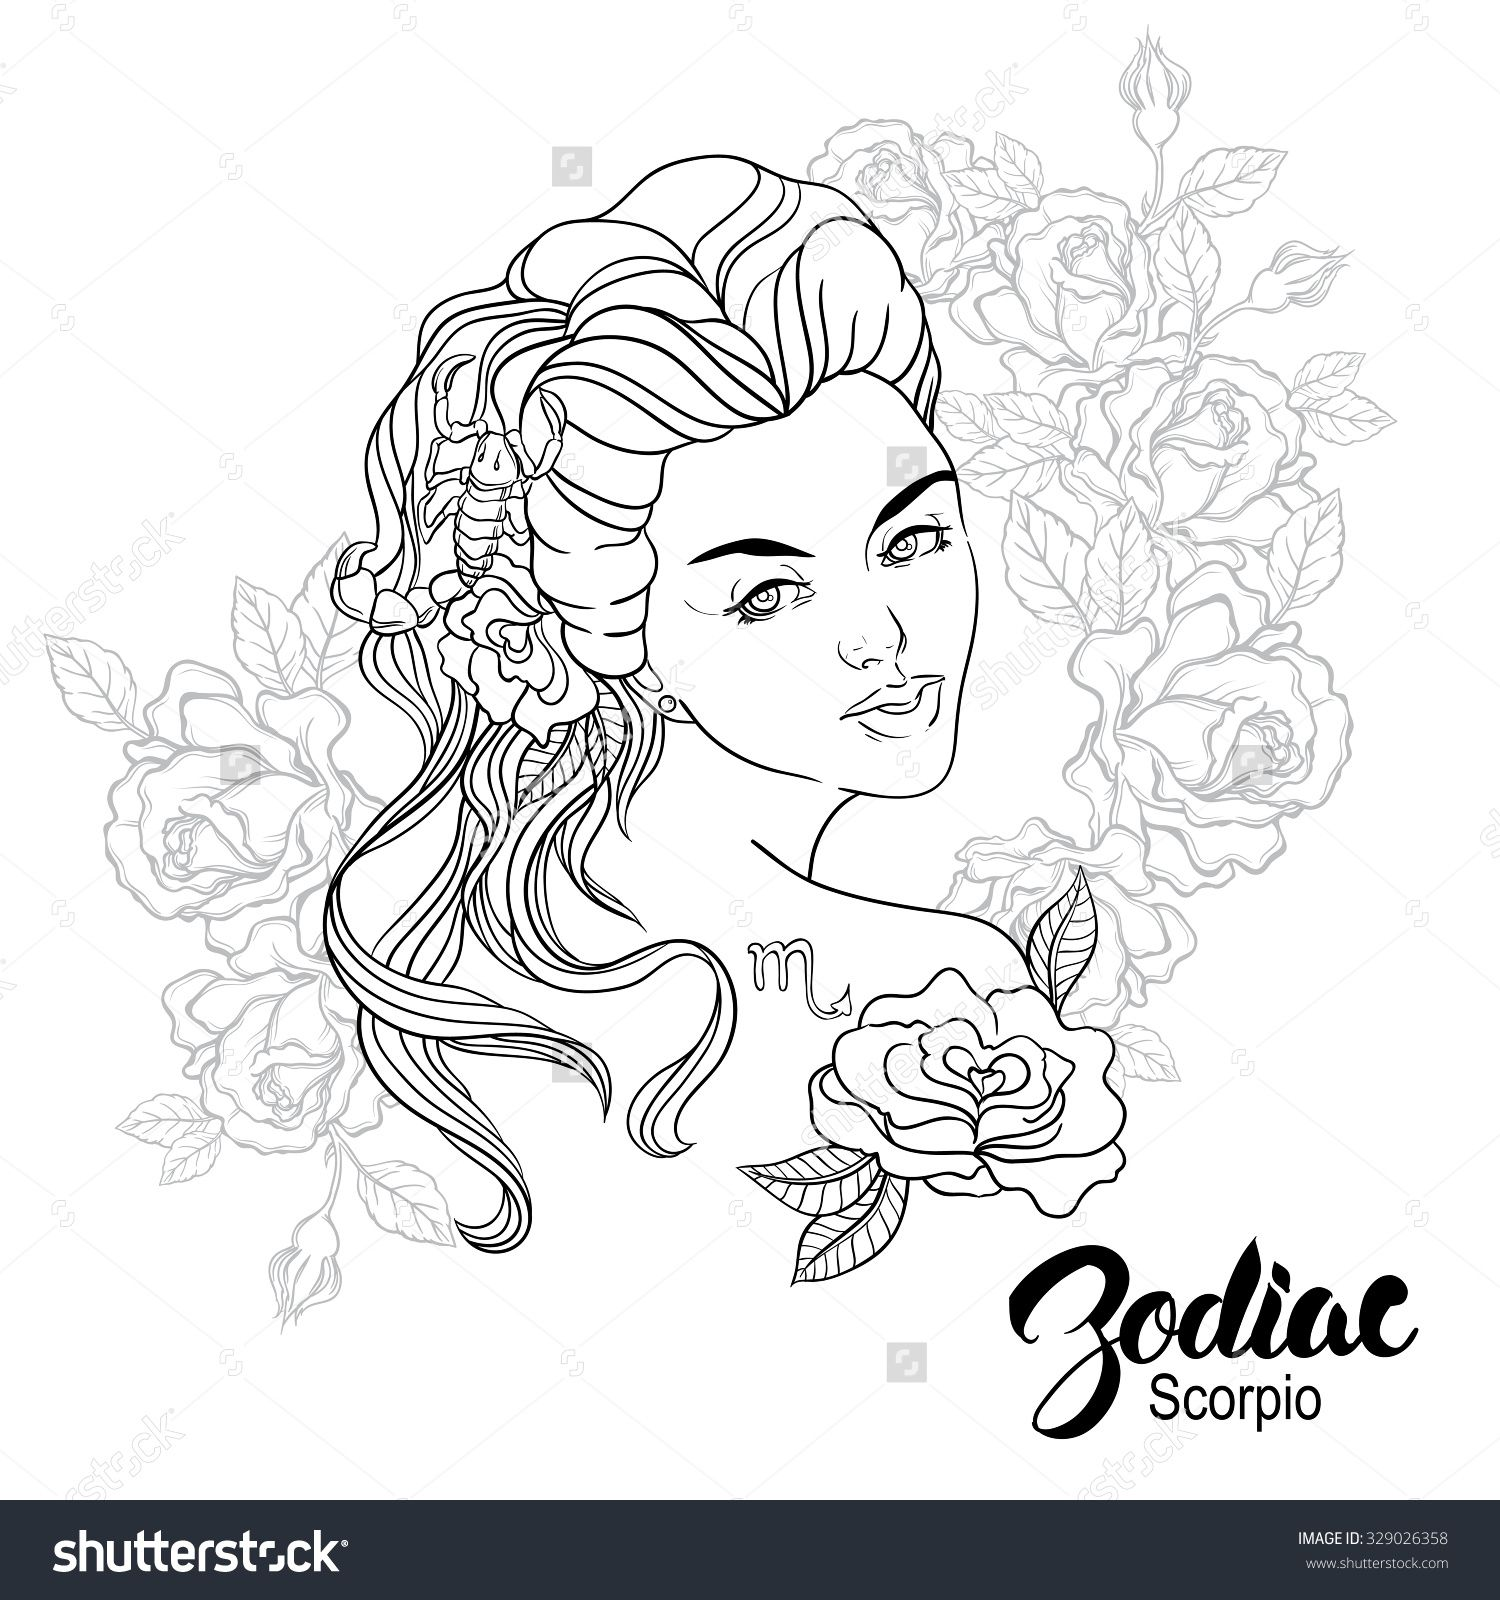 Zodiac Illustration Of Scorpio As Girl With Flowers Design For Coloring Book Page Coloring Books Coloring Book Pages Zodiac Signs Colors